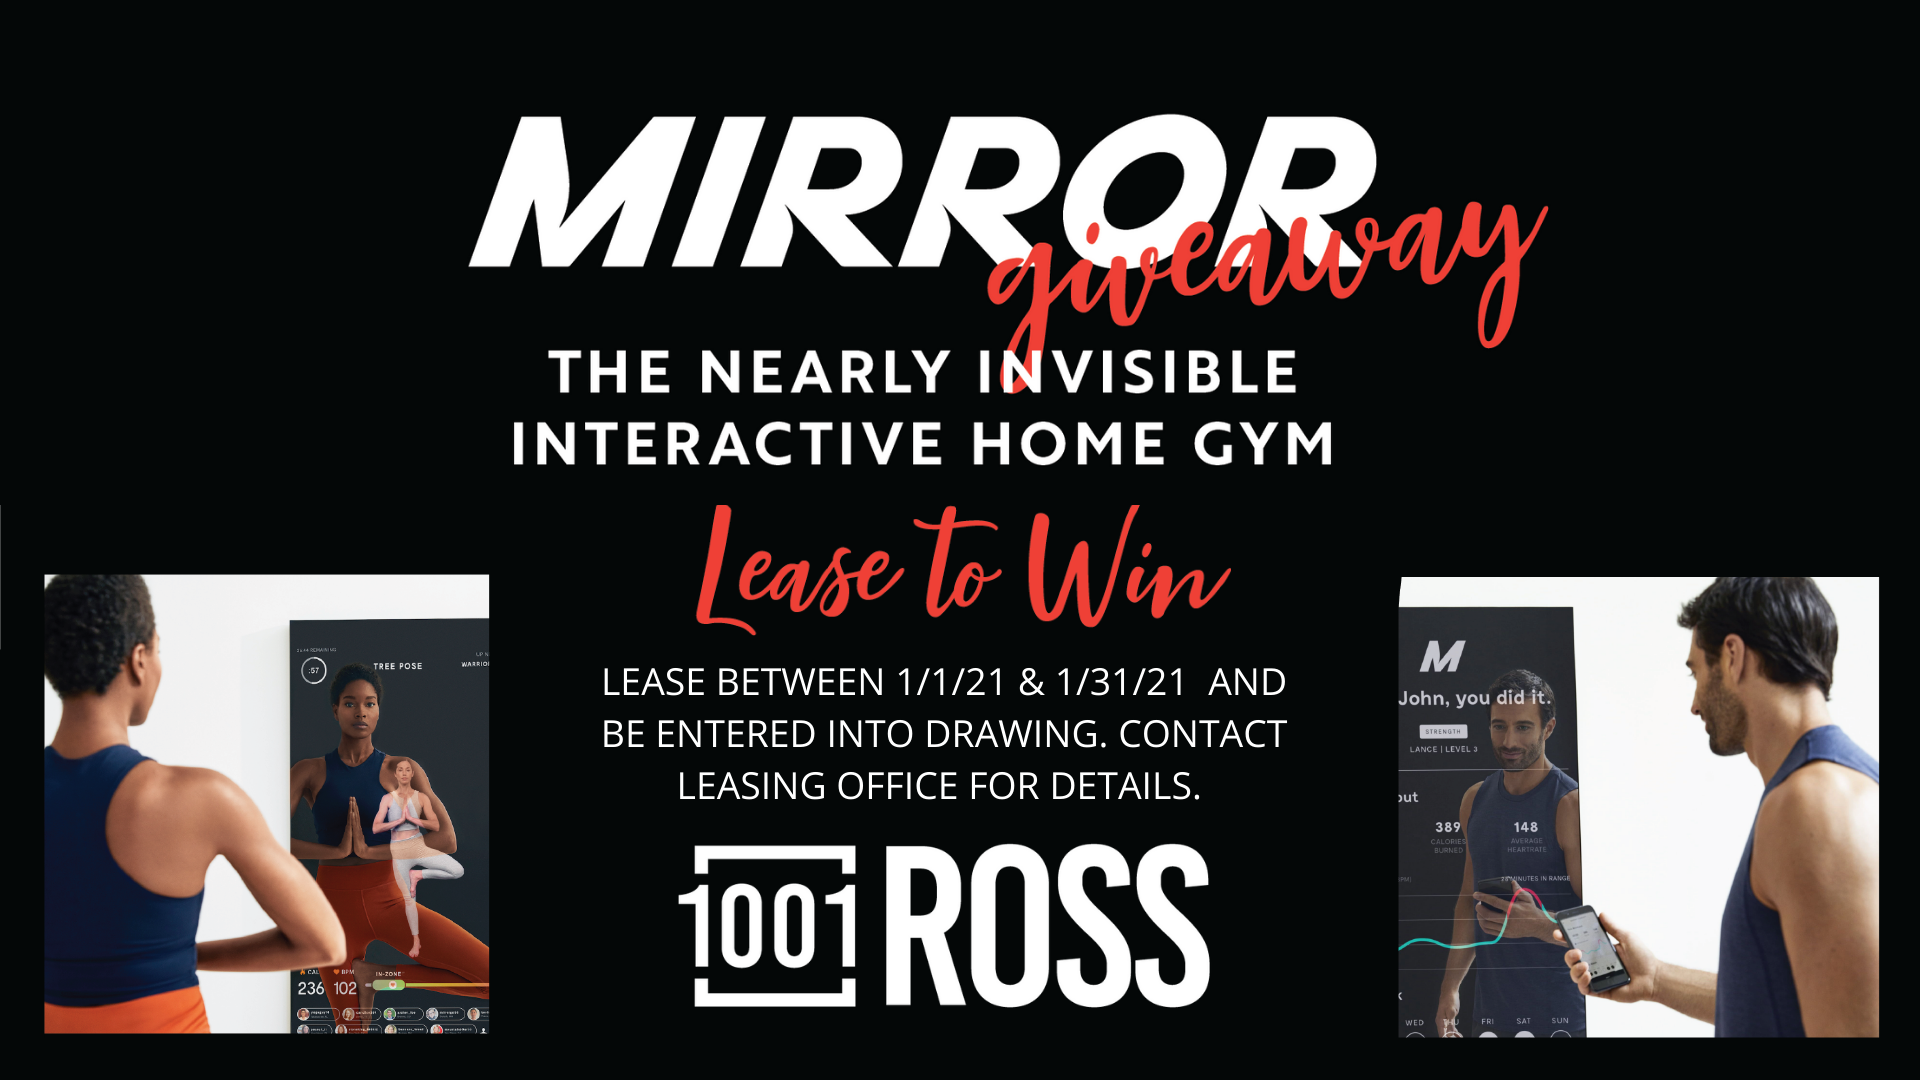 Mirror Giveaway. The nearly invisible interactive home gym. Lease to win. Lease between 1 01 21 and 1 31 21 and be entered into drawing. Contact leasing office for details. 1001 Ross.